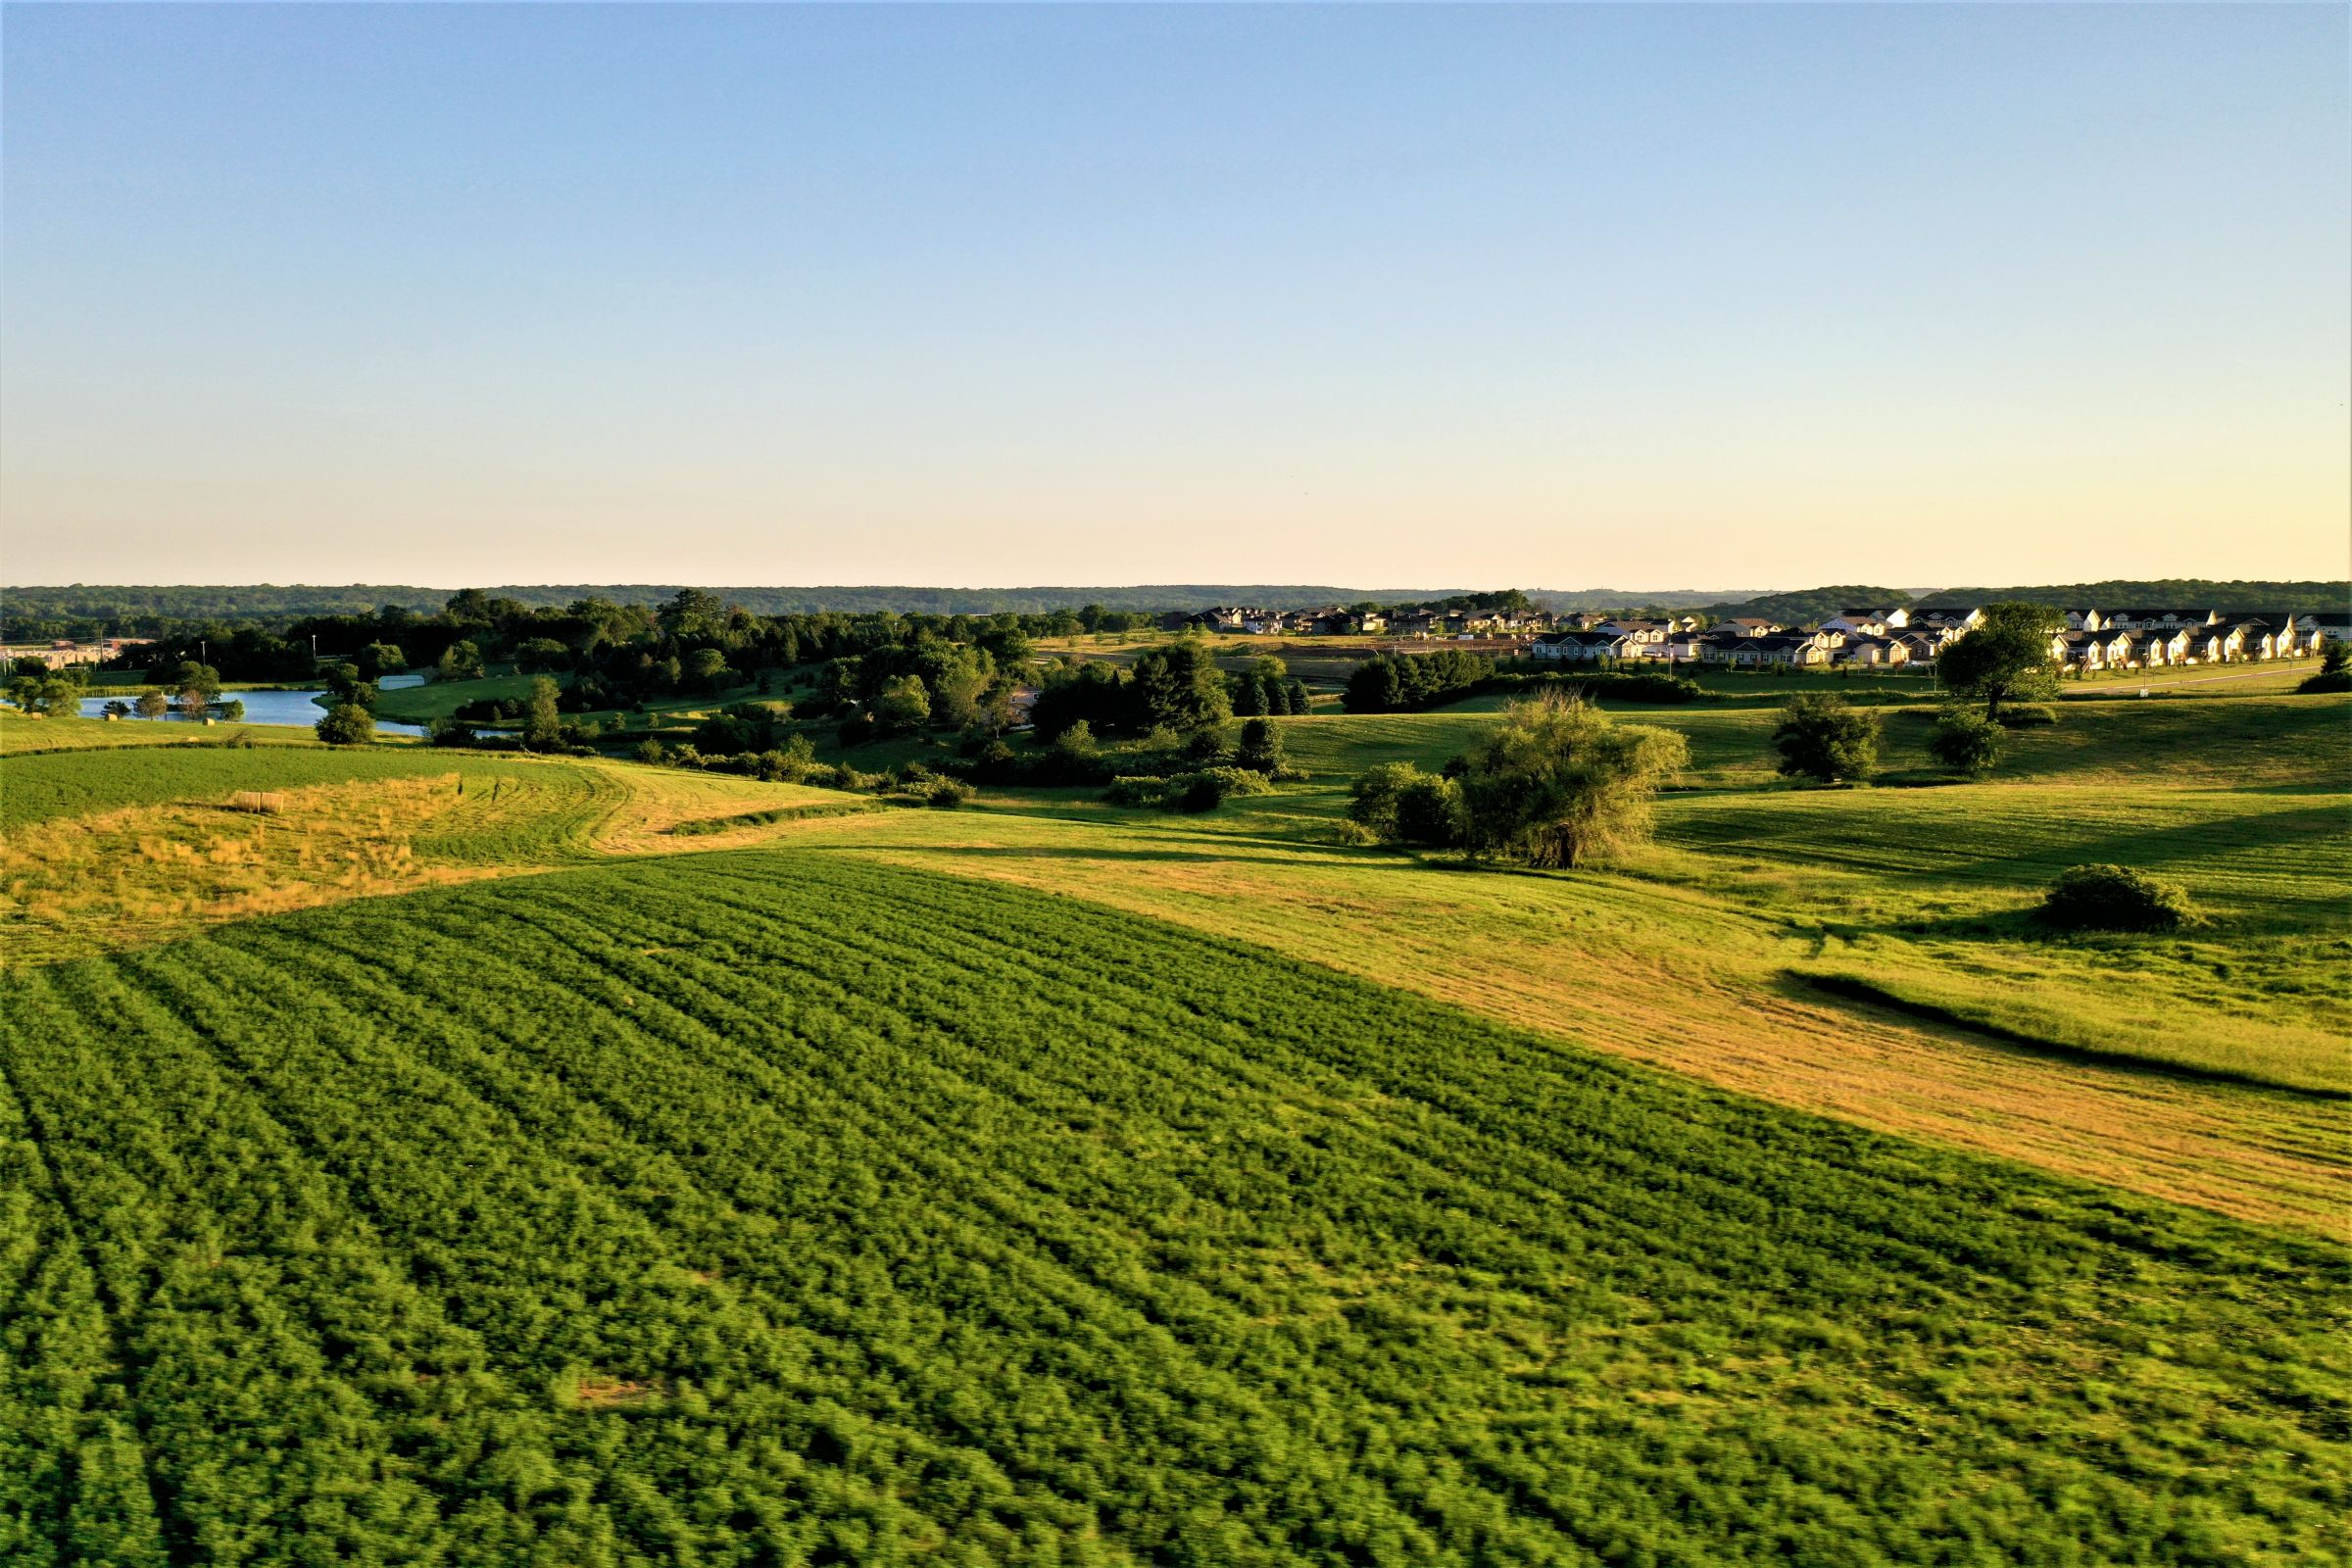 development-land-commercial-dallas-county-iowa-50-acres-listing-number-14399-2-2020-07-31-210922.jpg